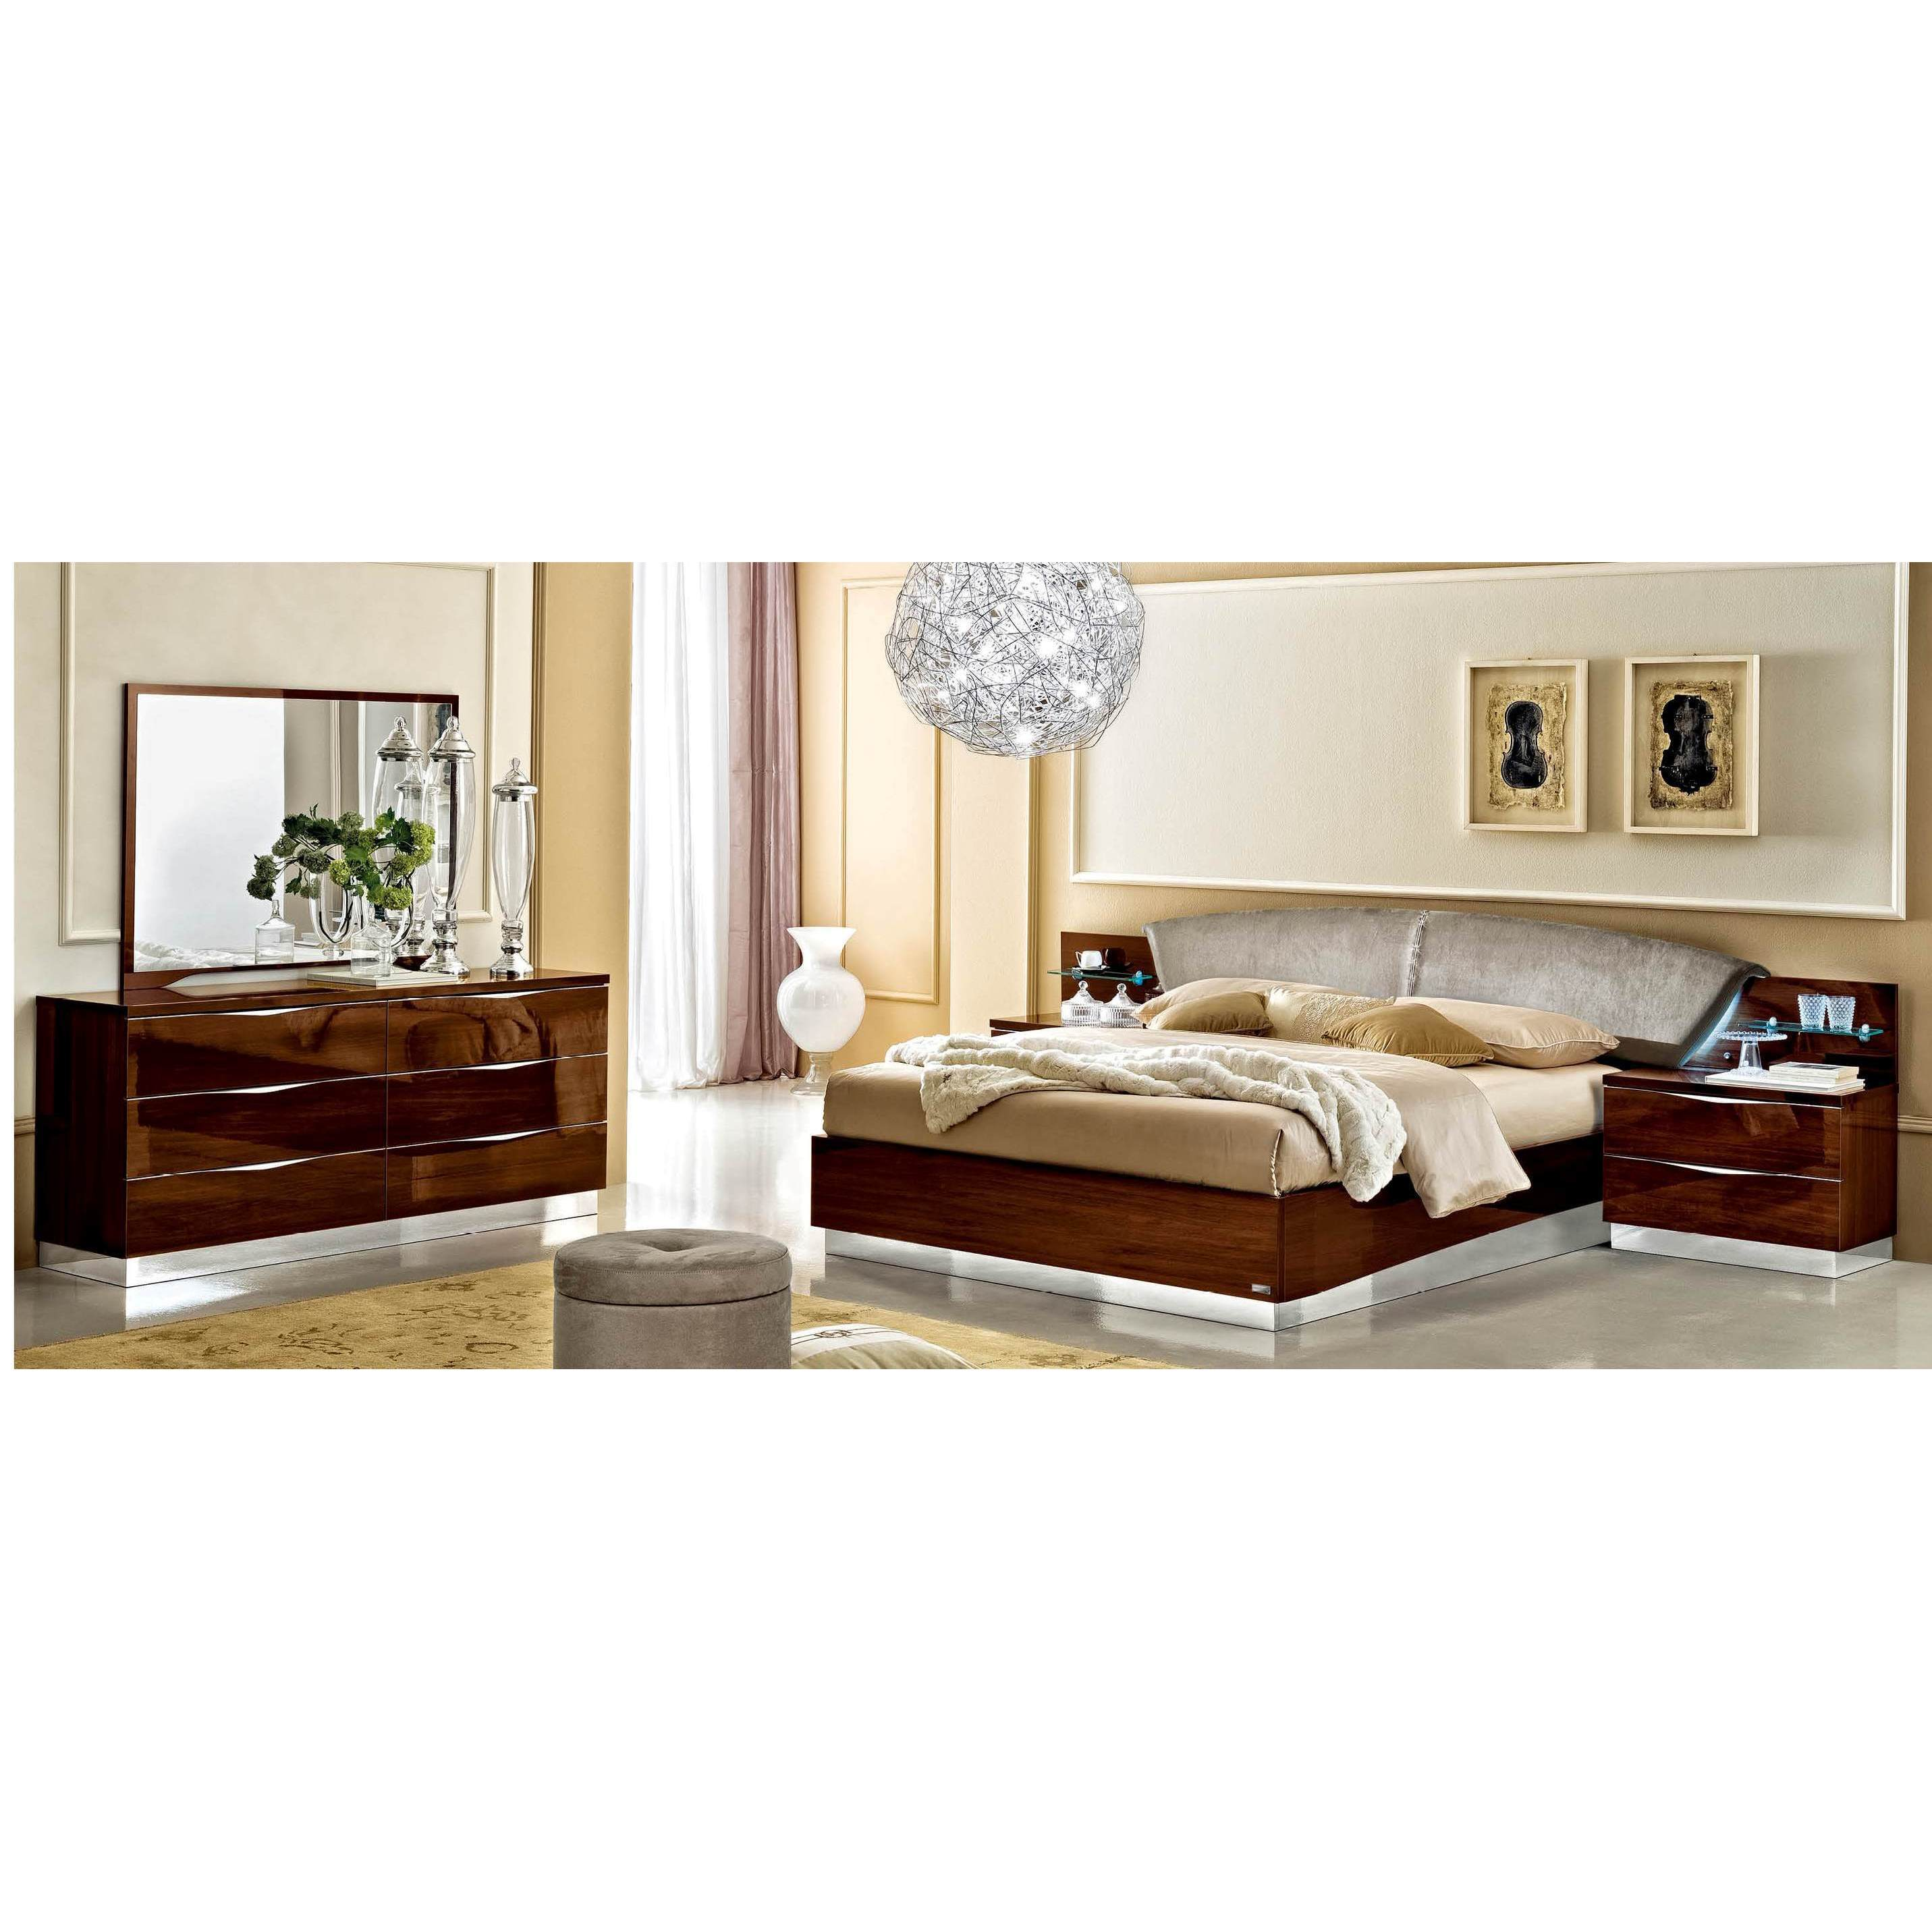 Shop Luca Home Walnut and Nabuk Italian Leather Bed - Free Shipping ...